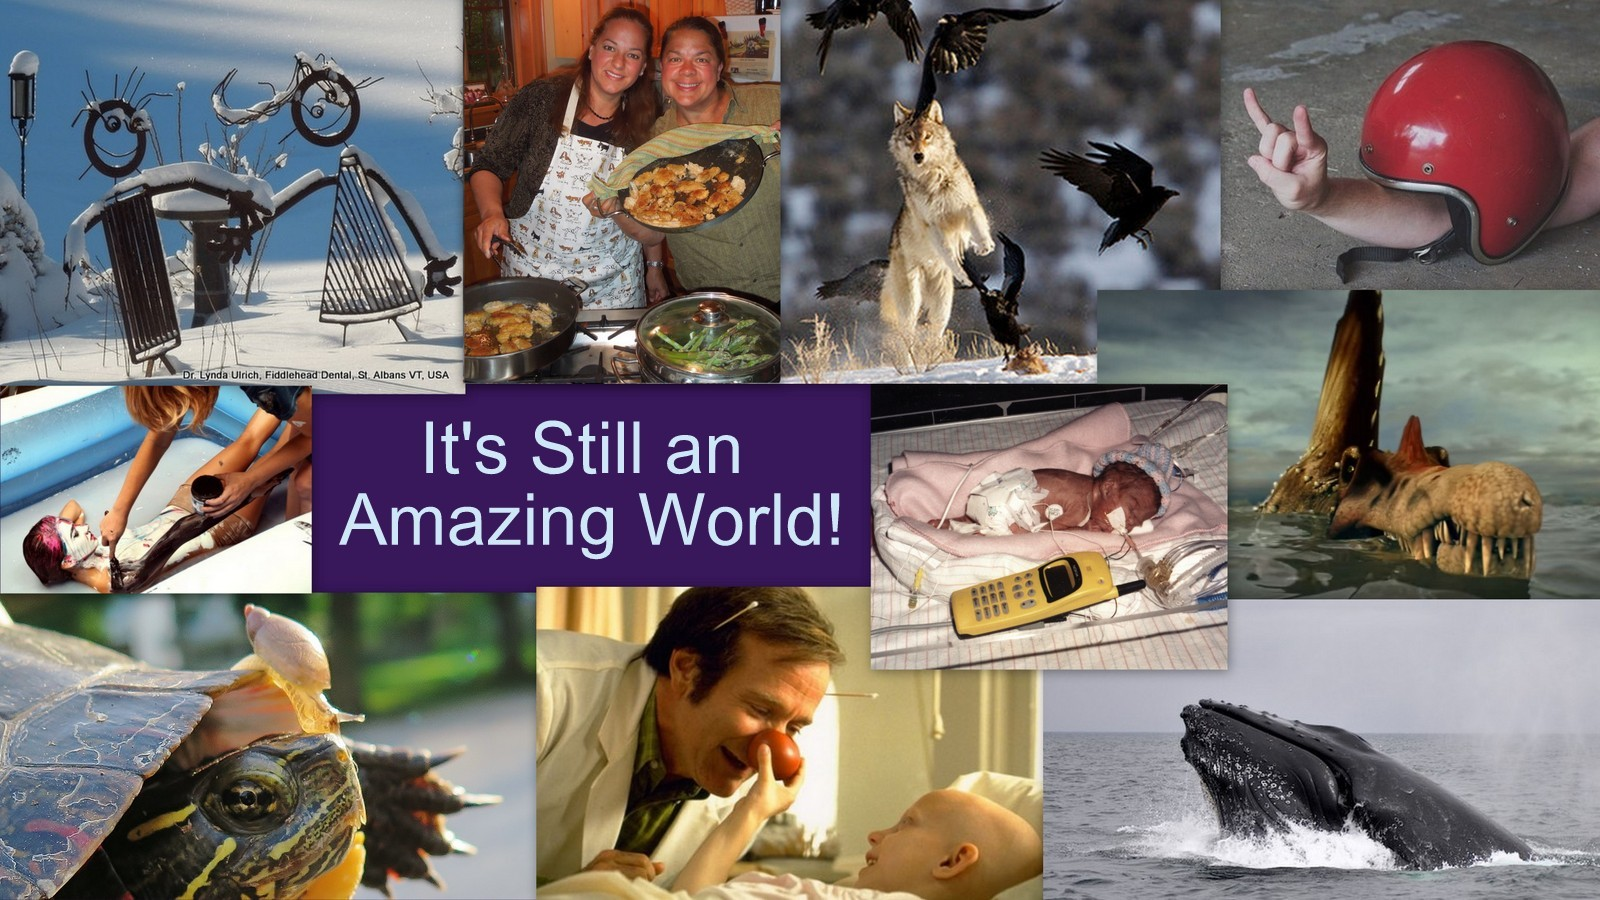 Image: Collage proving It is an amazing world.